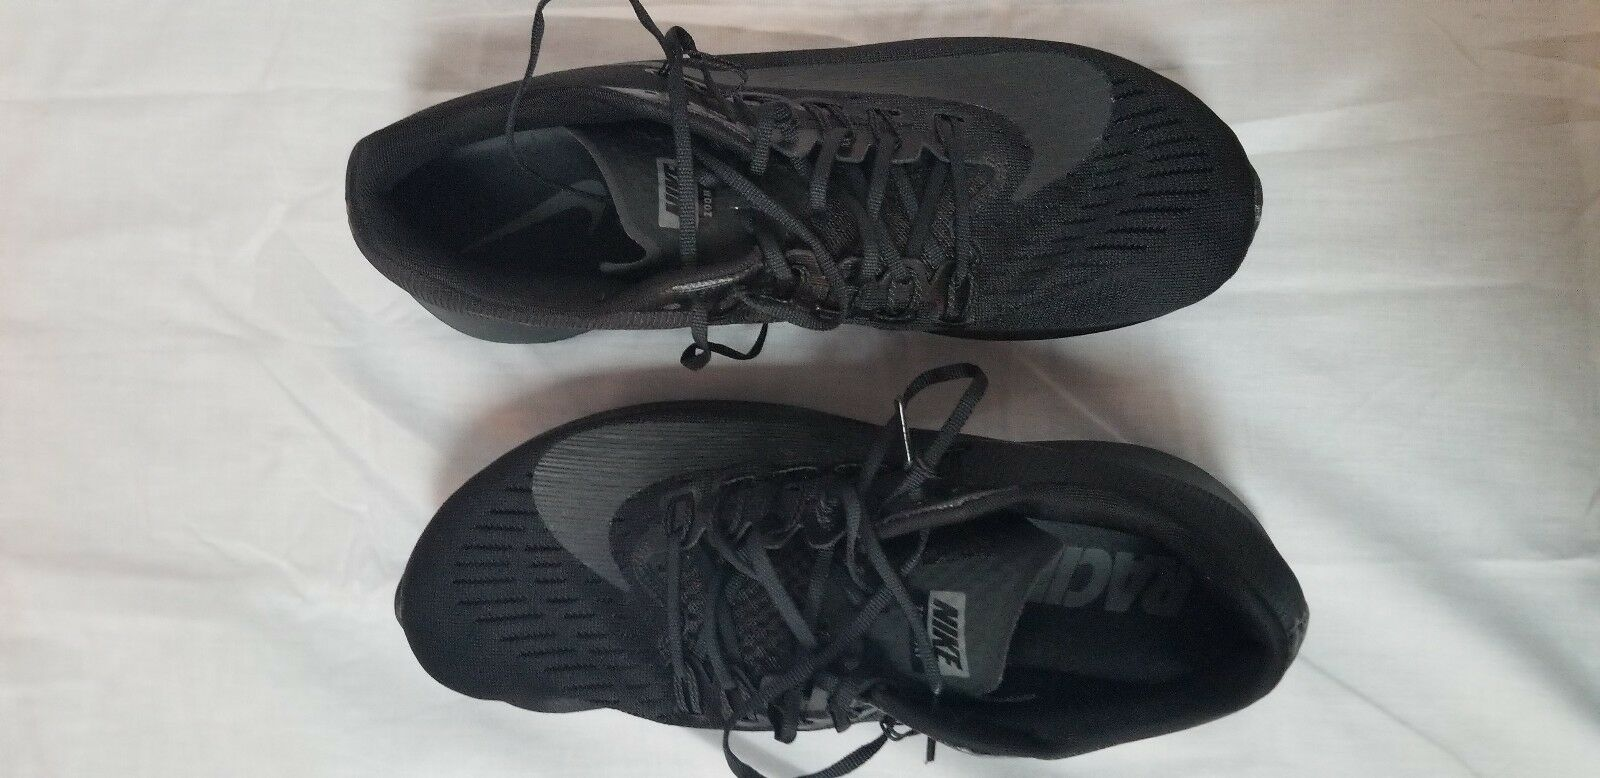 6d9c733d6876 Nike Zoom Fly Men s Running shoes 880848 003 003 003 Black   Anthracite NIB  150 d85c45